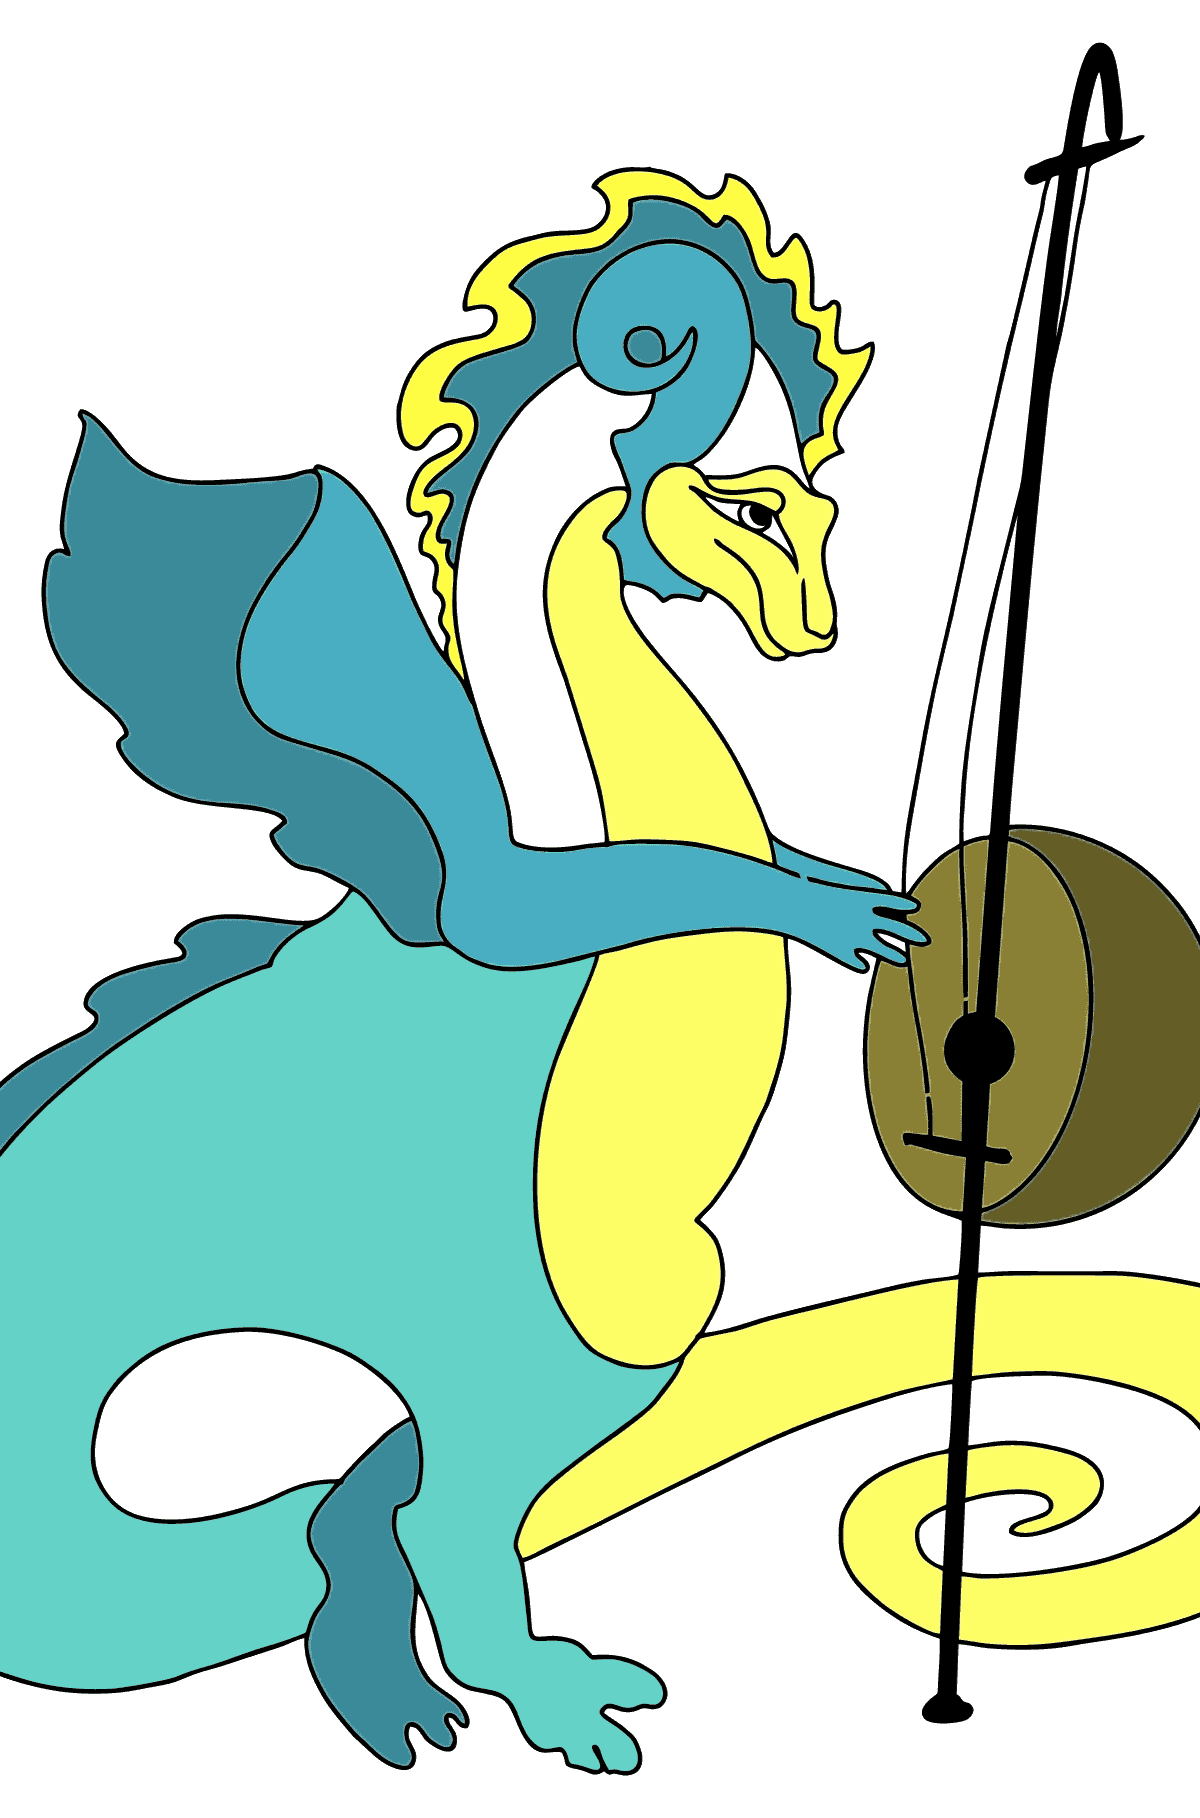 Coloring Page - A Dragon Loves Music - Coloring Pages for Children